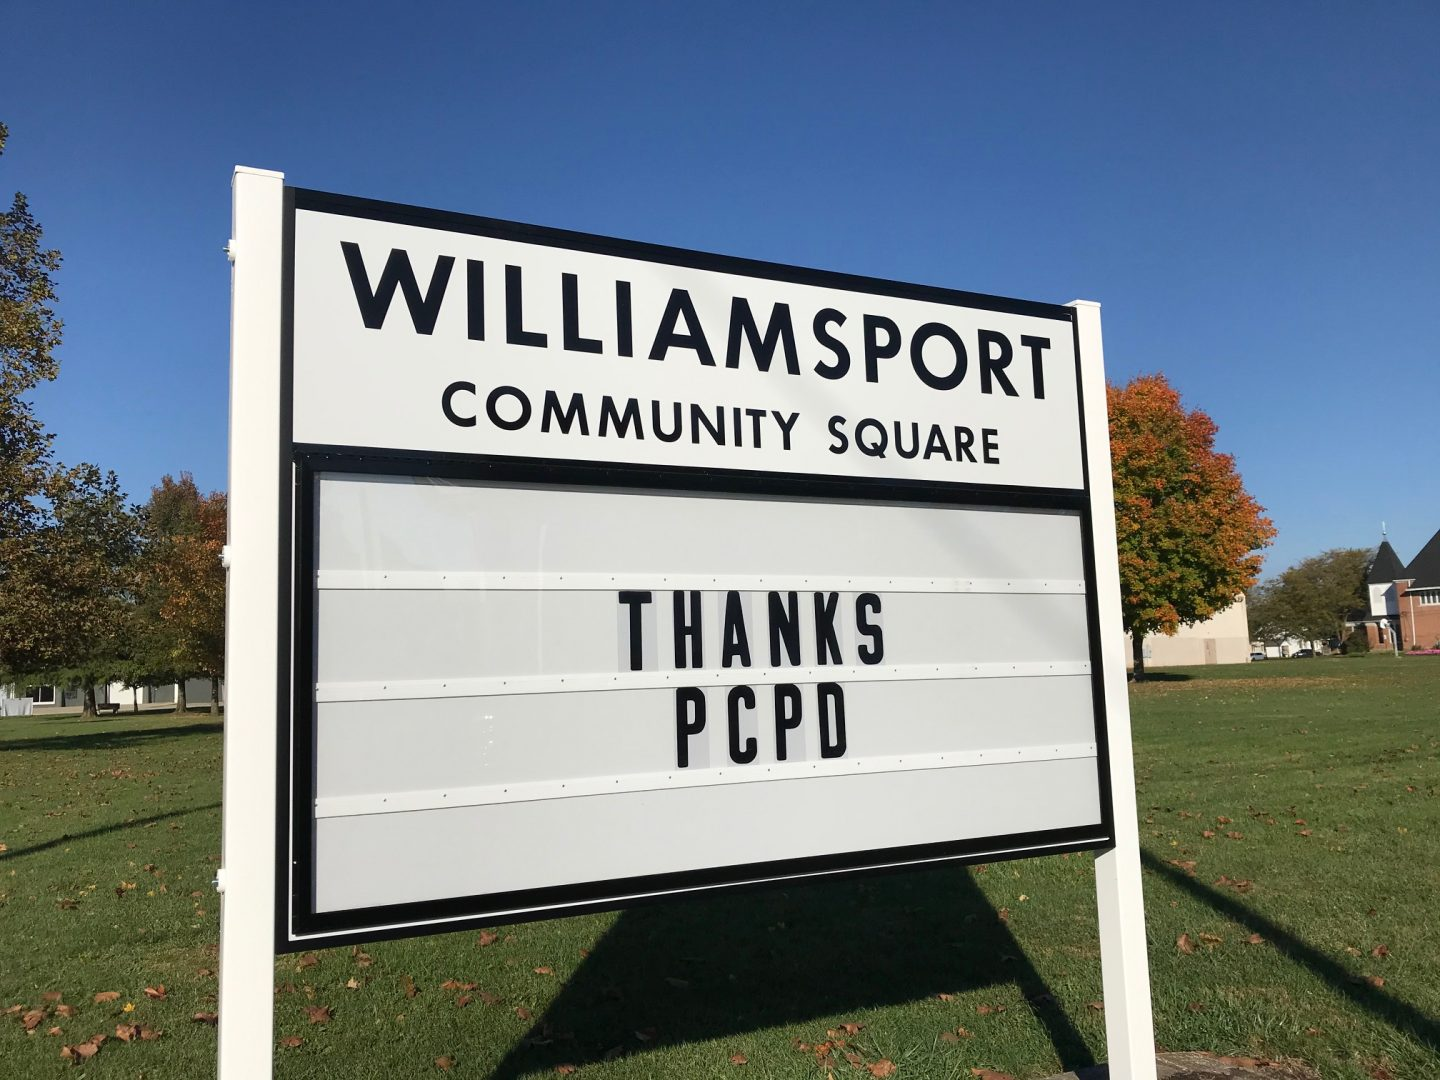 2020 Grant Project for Village of Williamsport for new park sign